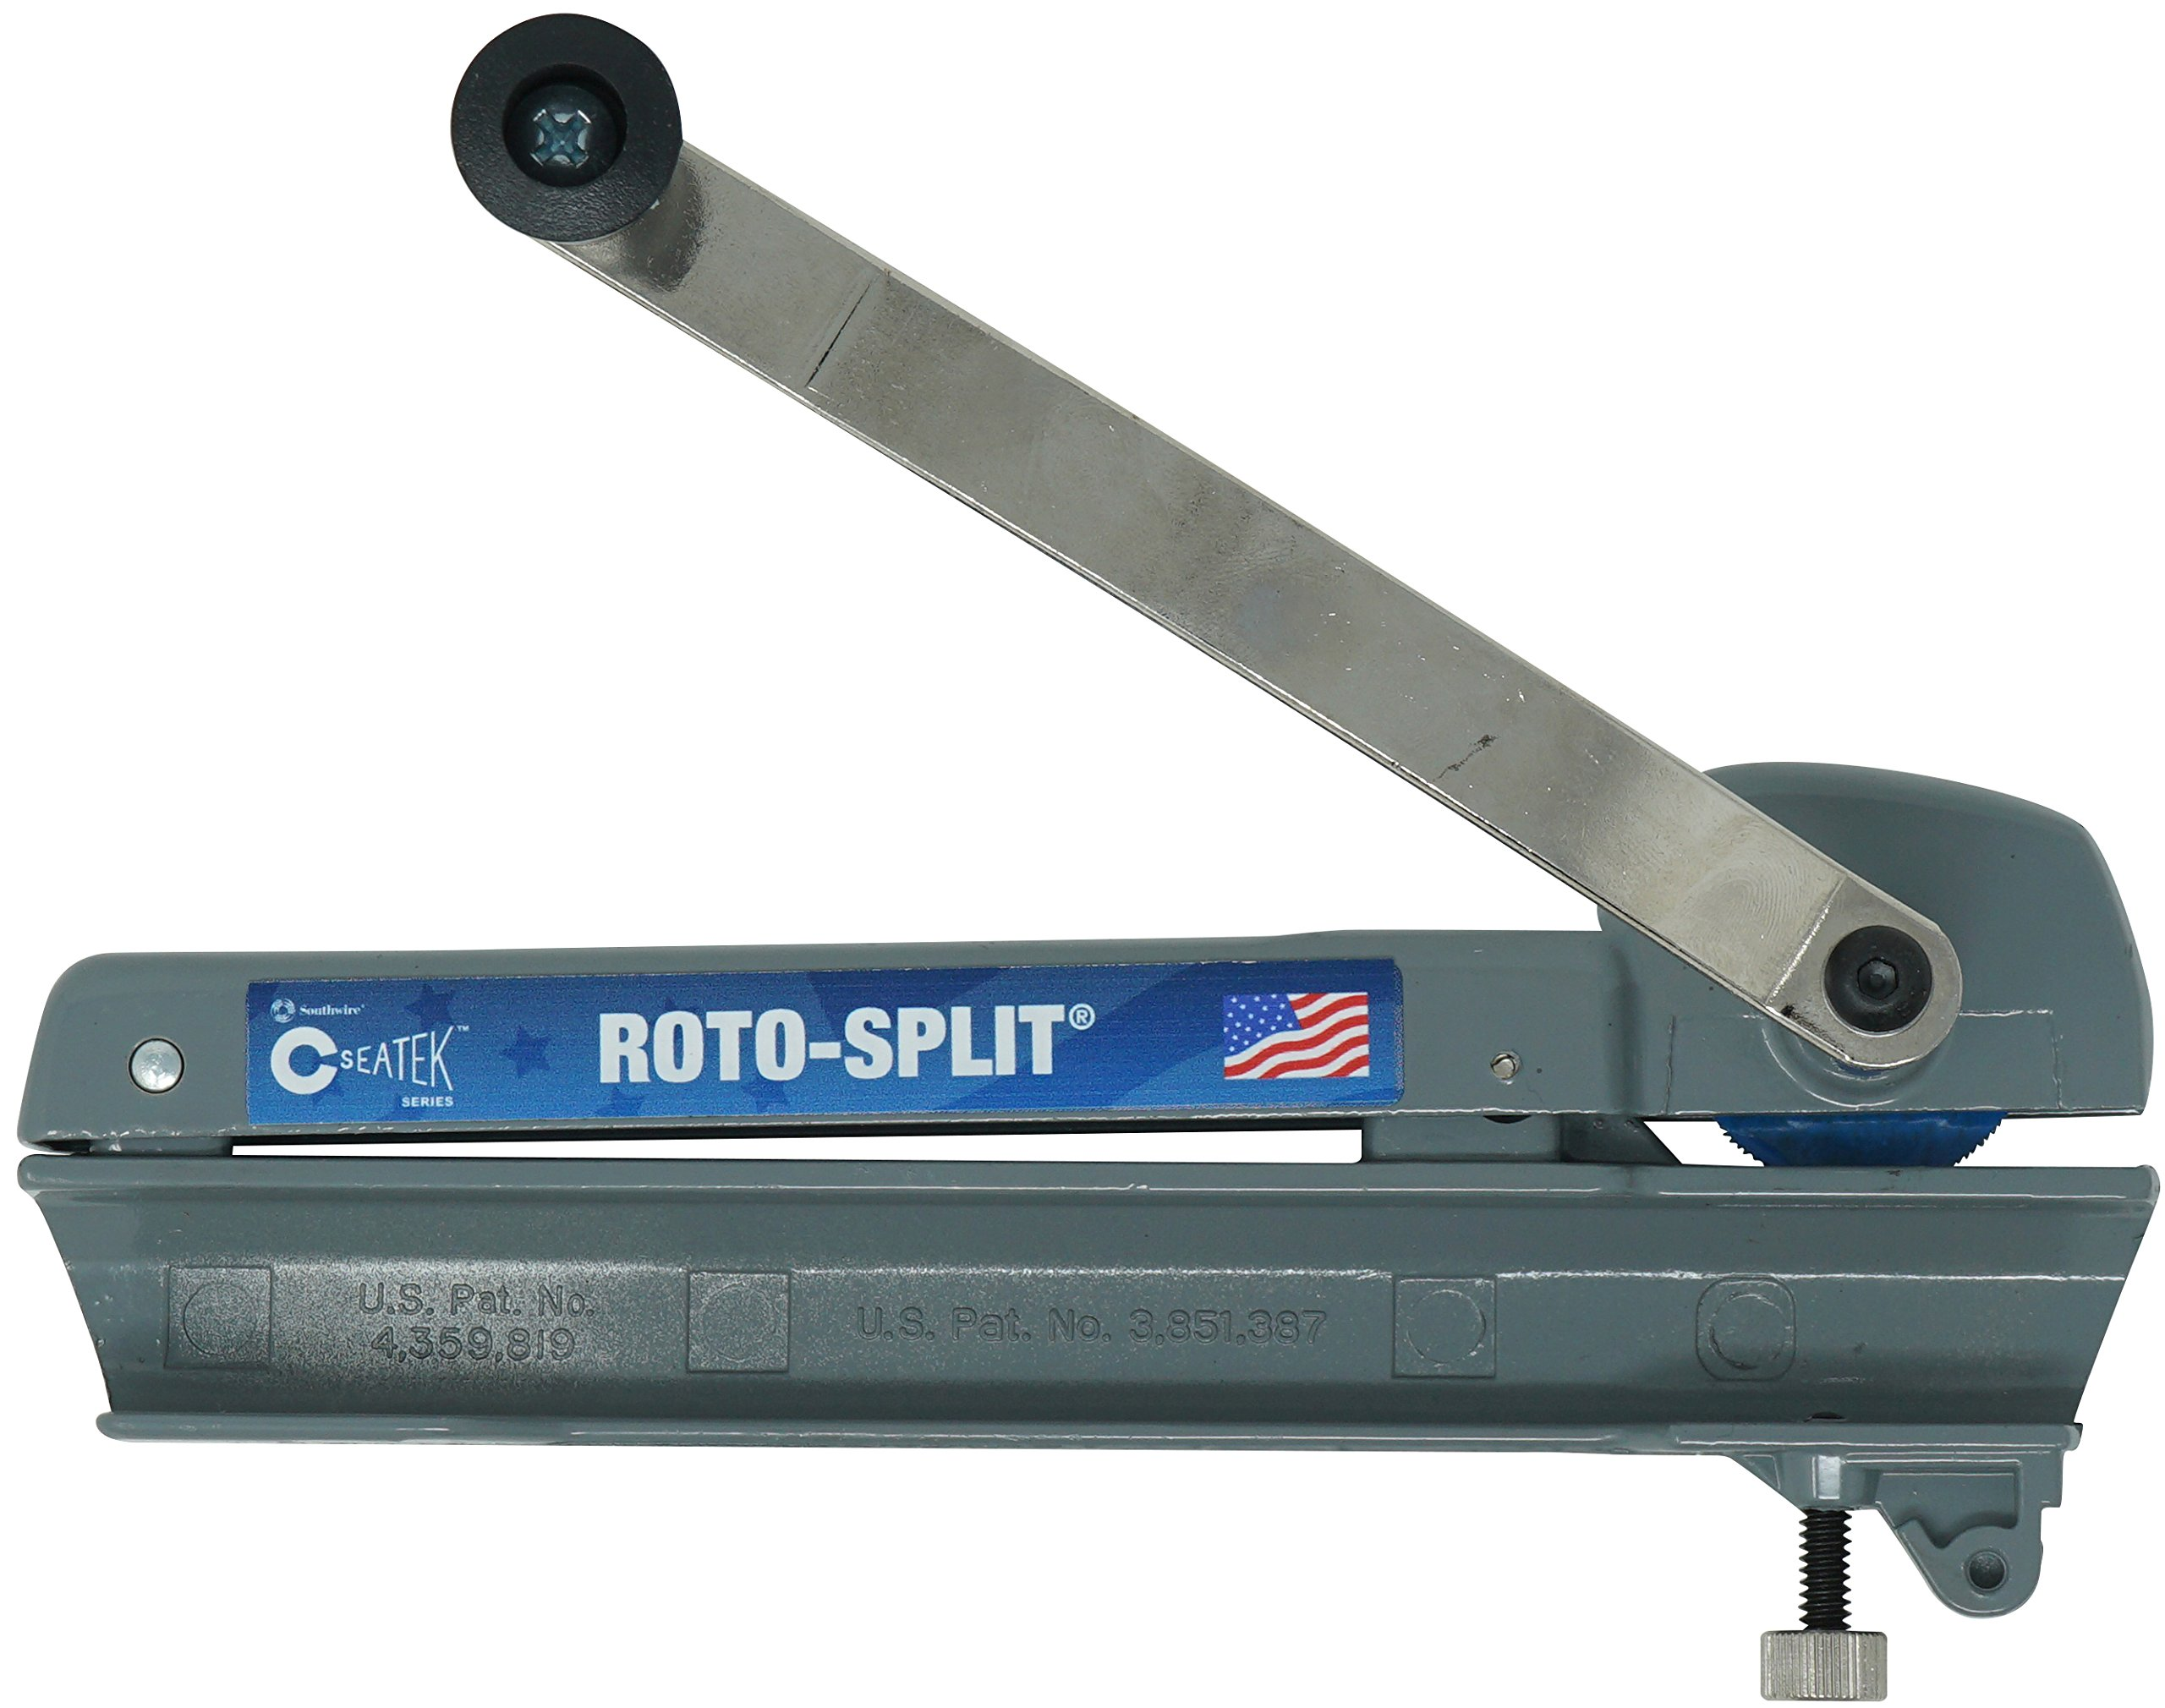 Southwire Tools American Made RS-101 Seatek Original Roto-Split, Great for 14/2 to 8/4 BX Cable, Trade Size of 3/8''